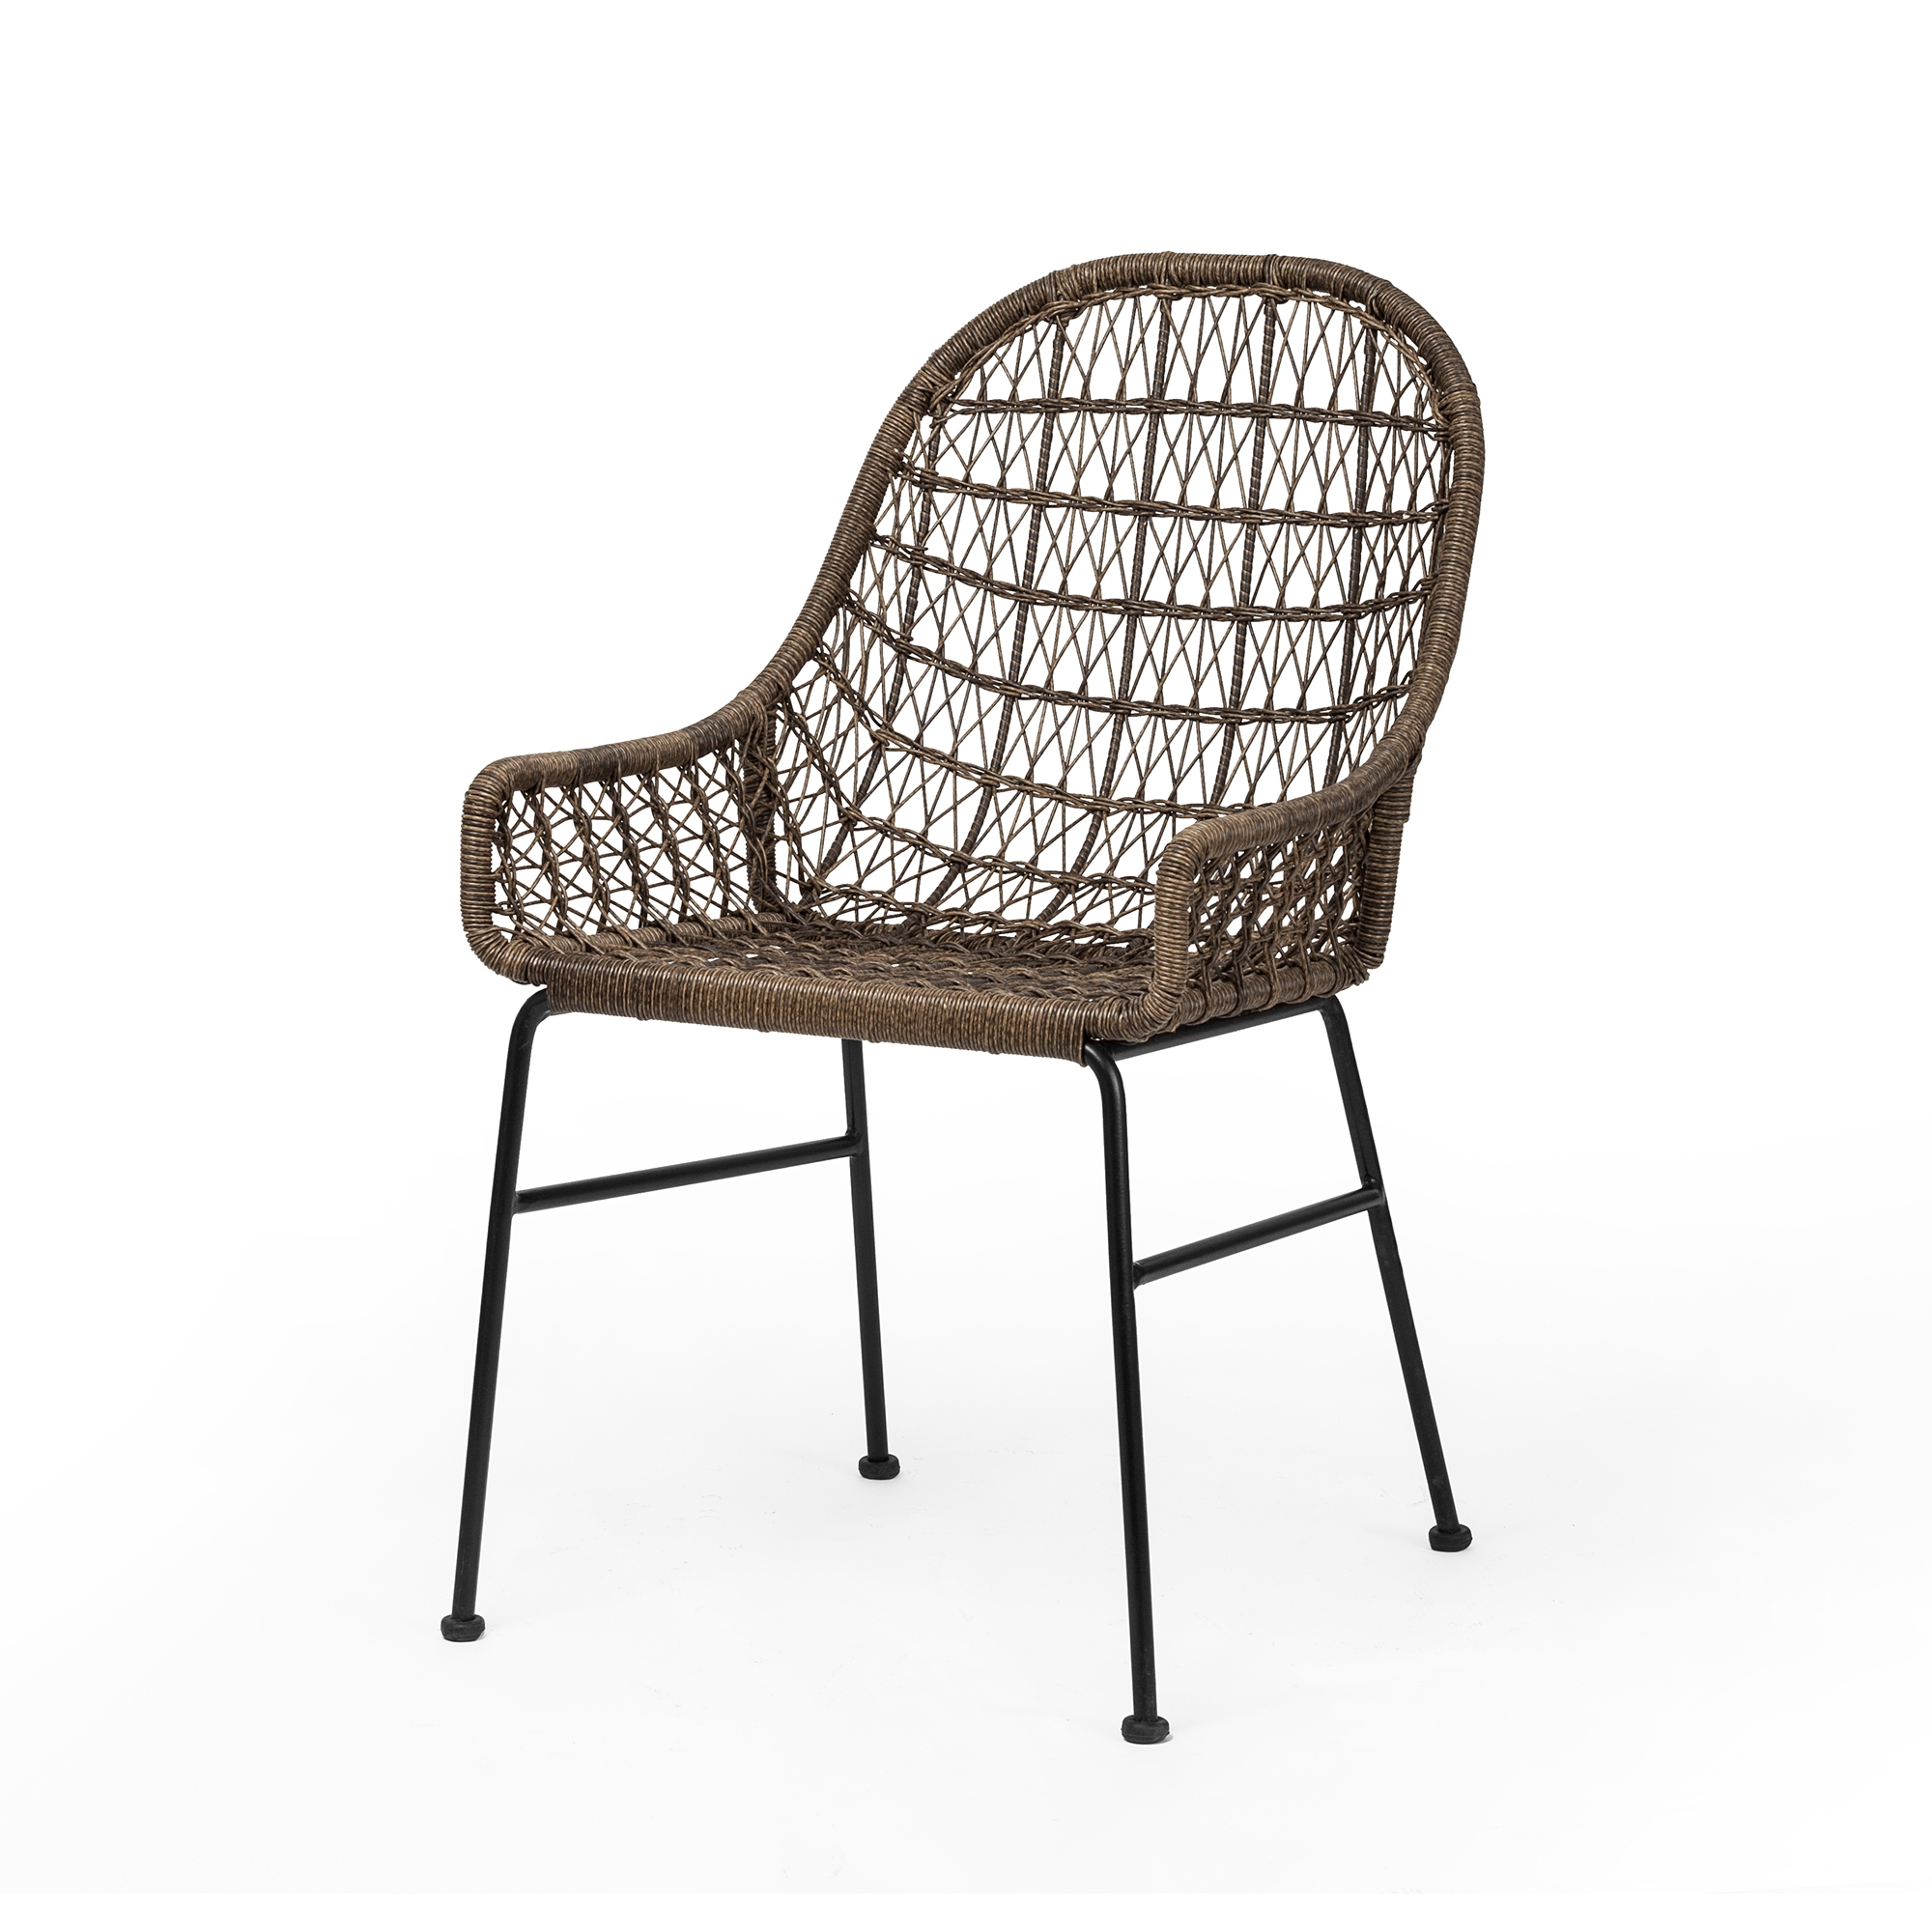 Grass roots bandera woven dining chair the khazana home austin furniture store